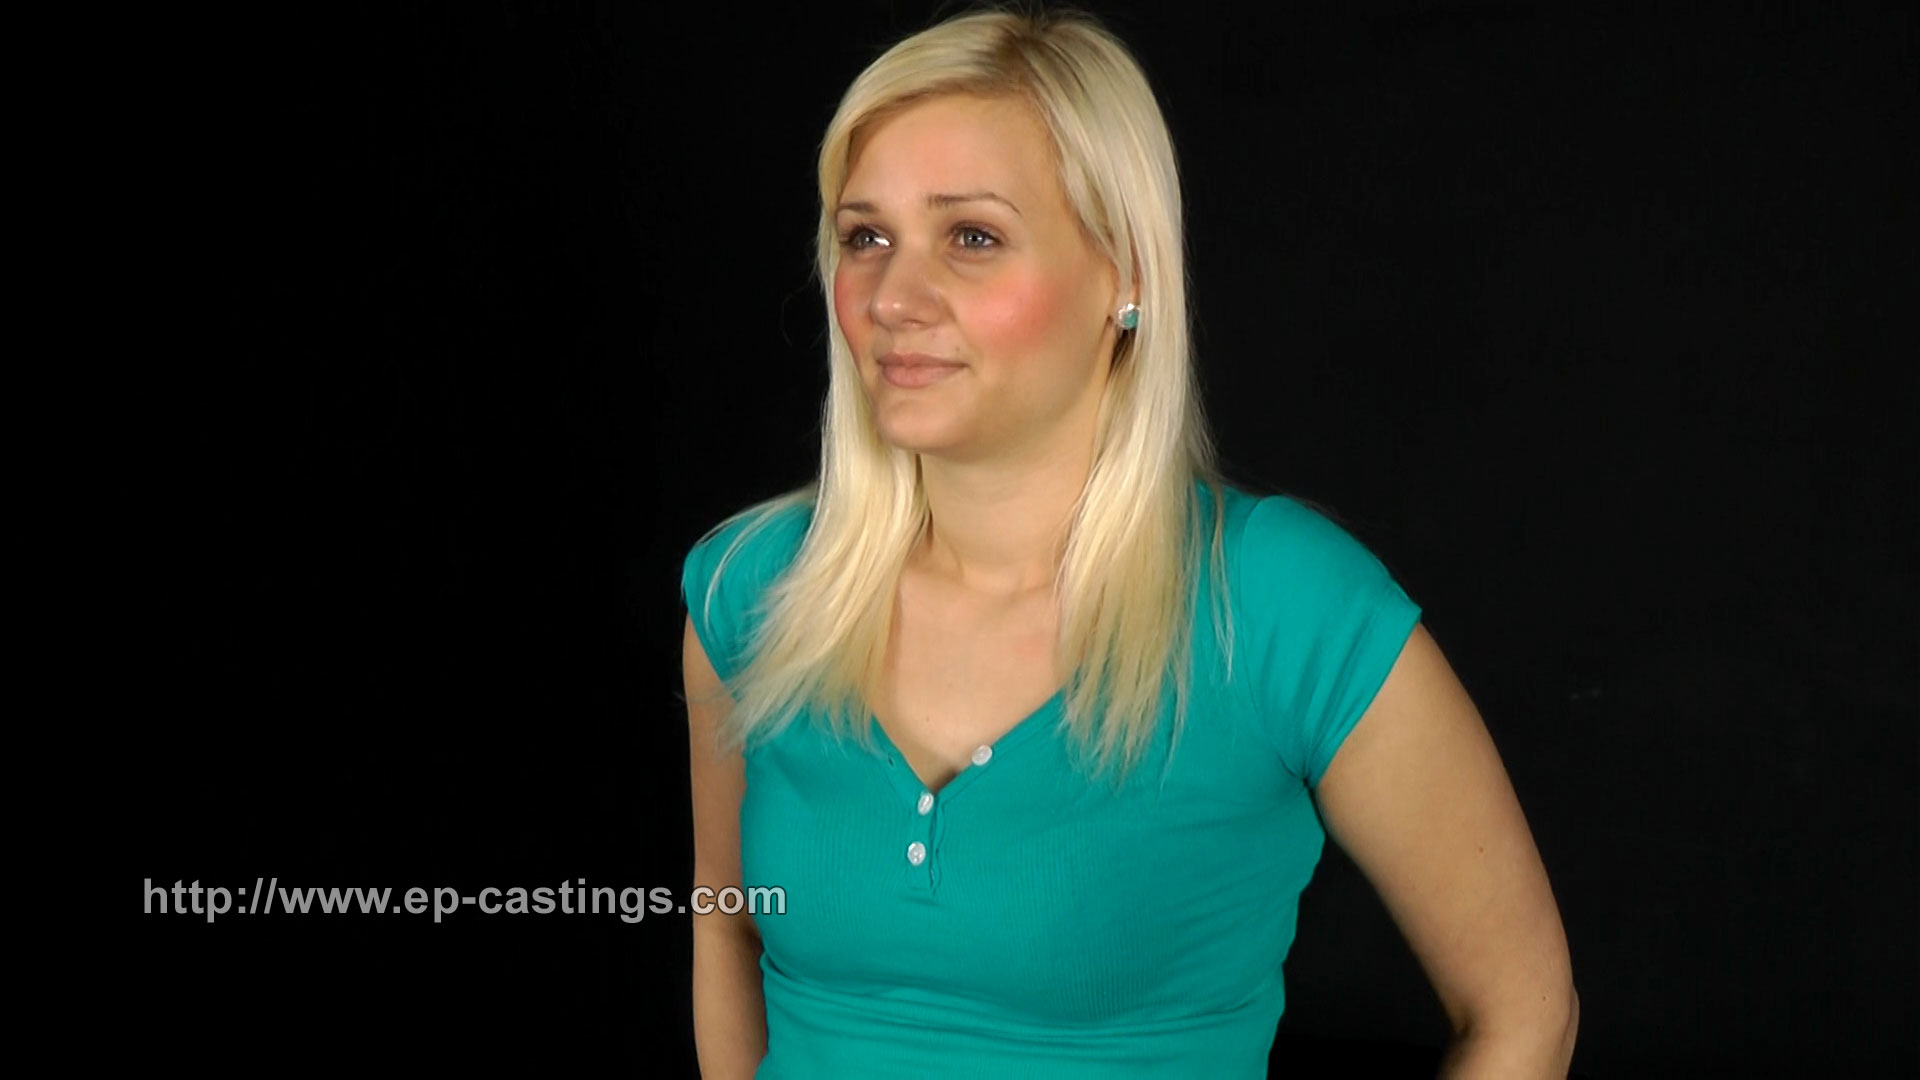 Ep castings gina 1 32 years 4